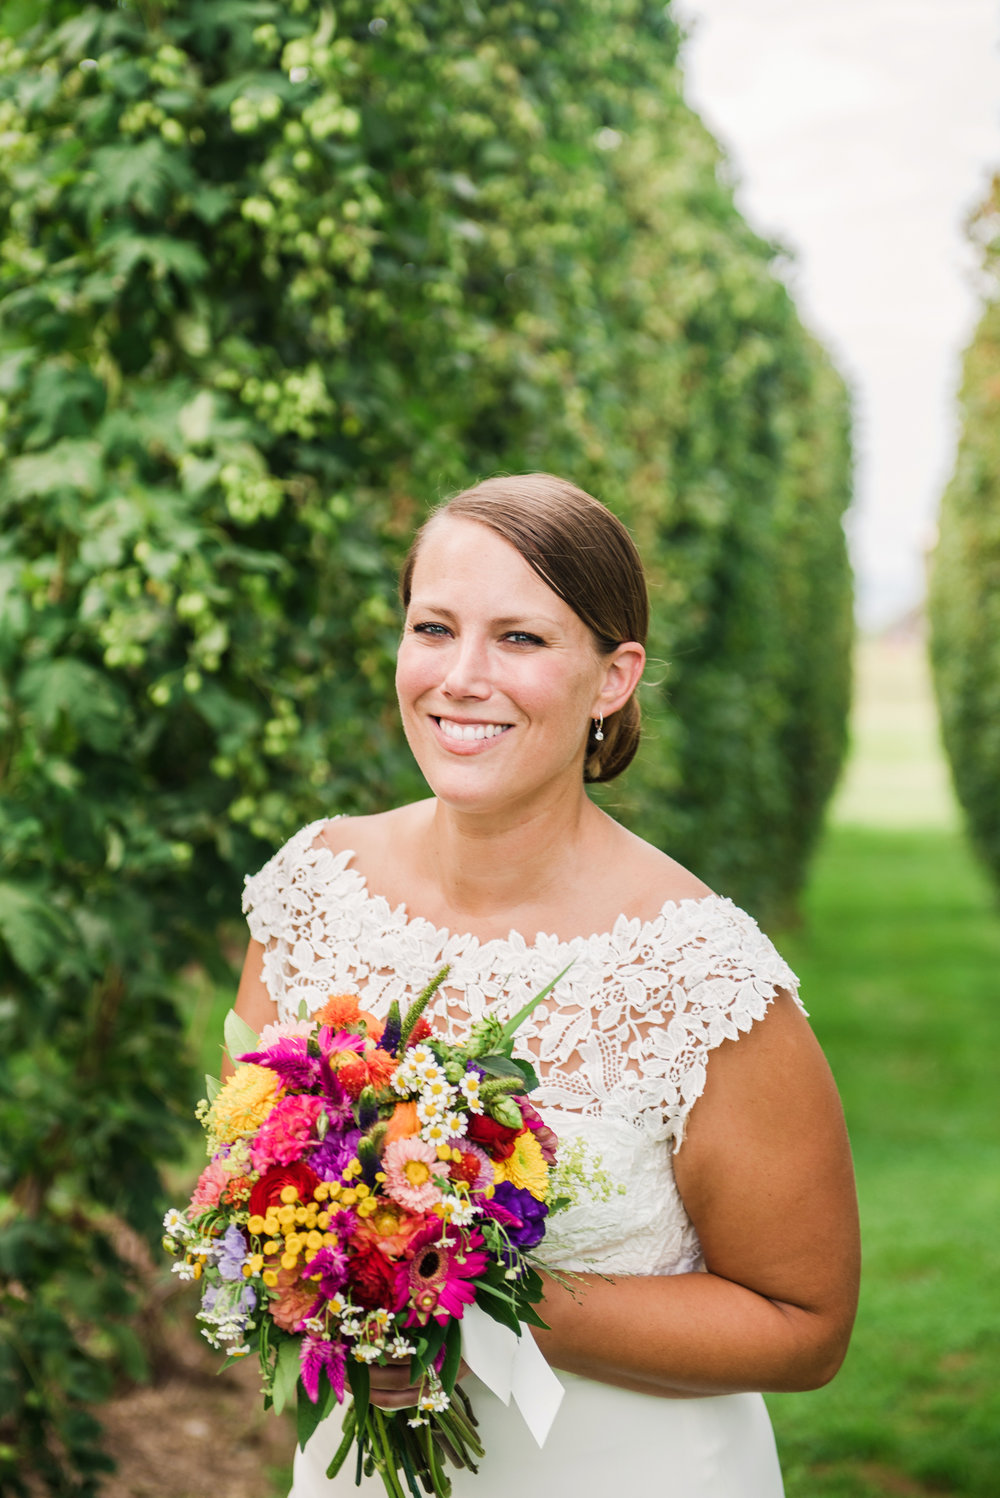 Climbing_Bines_Finger_Lakes_Wedding_JILL_STUDIO_Rochester_NY_Photographer_170156.jpg